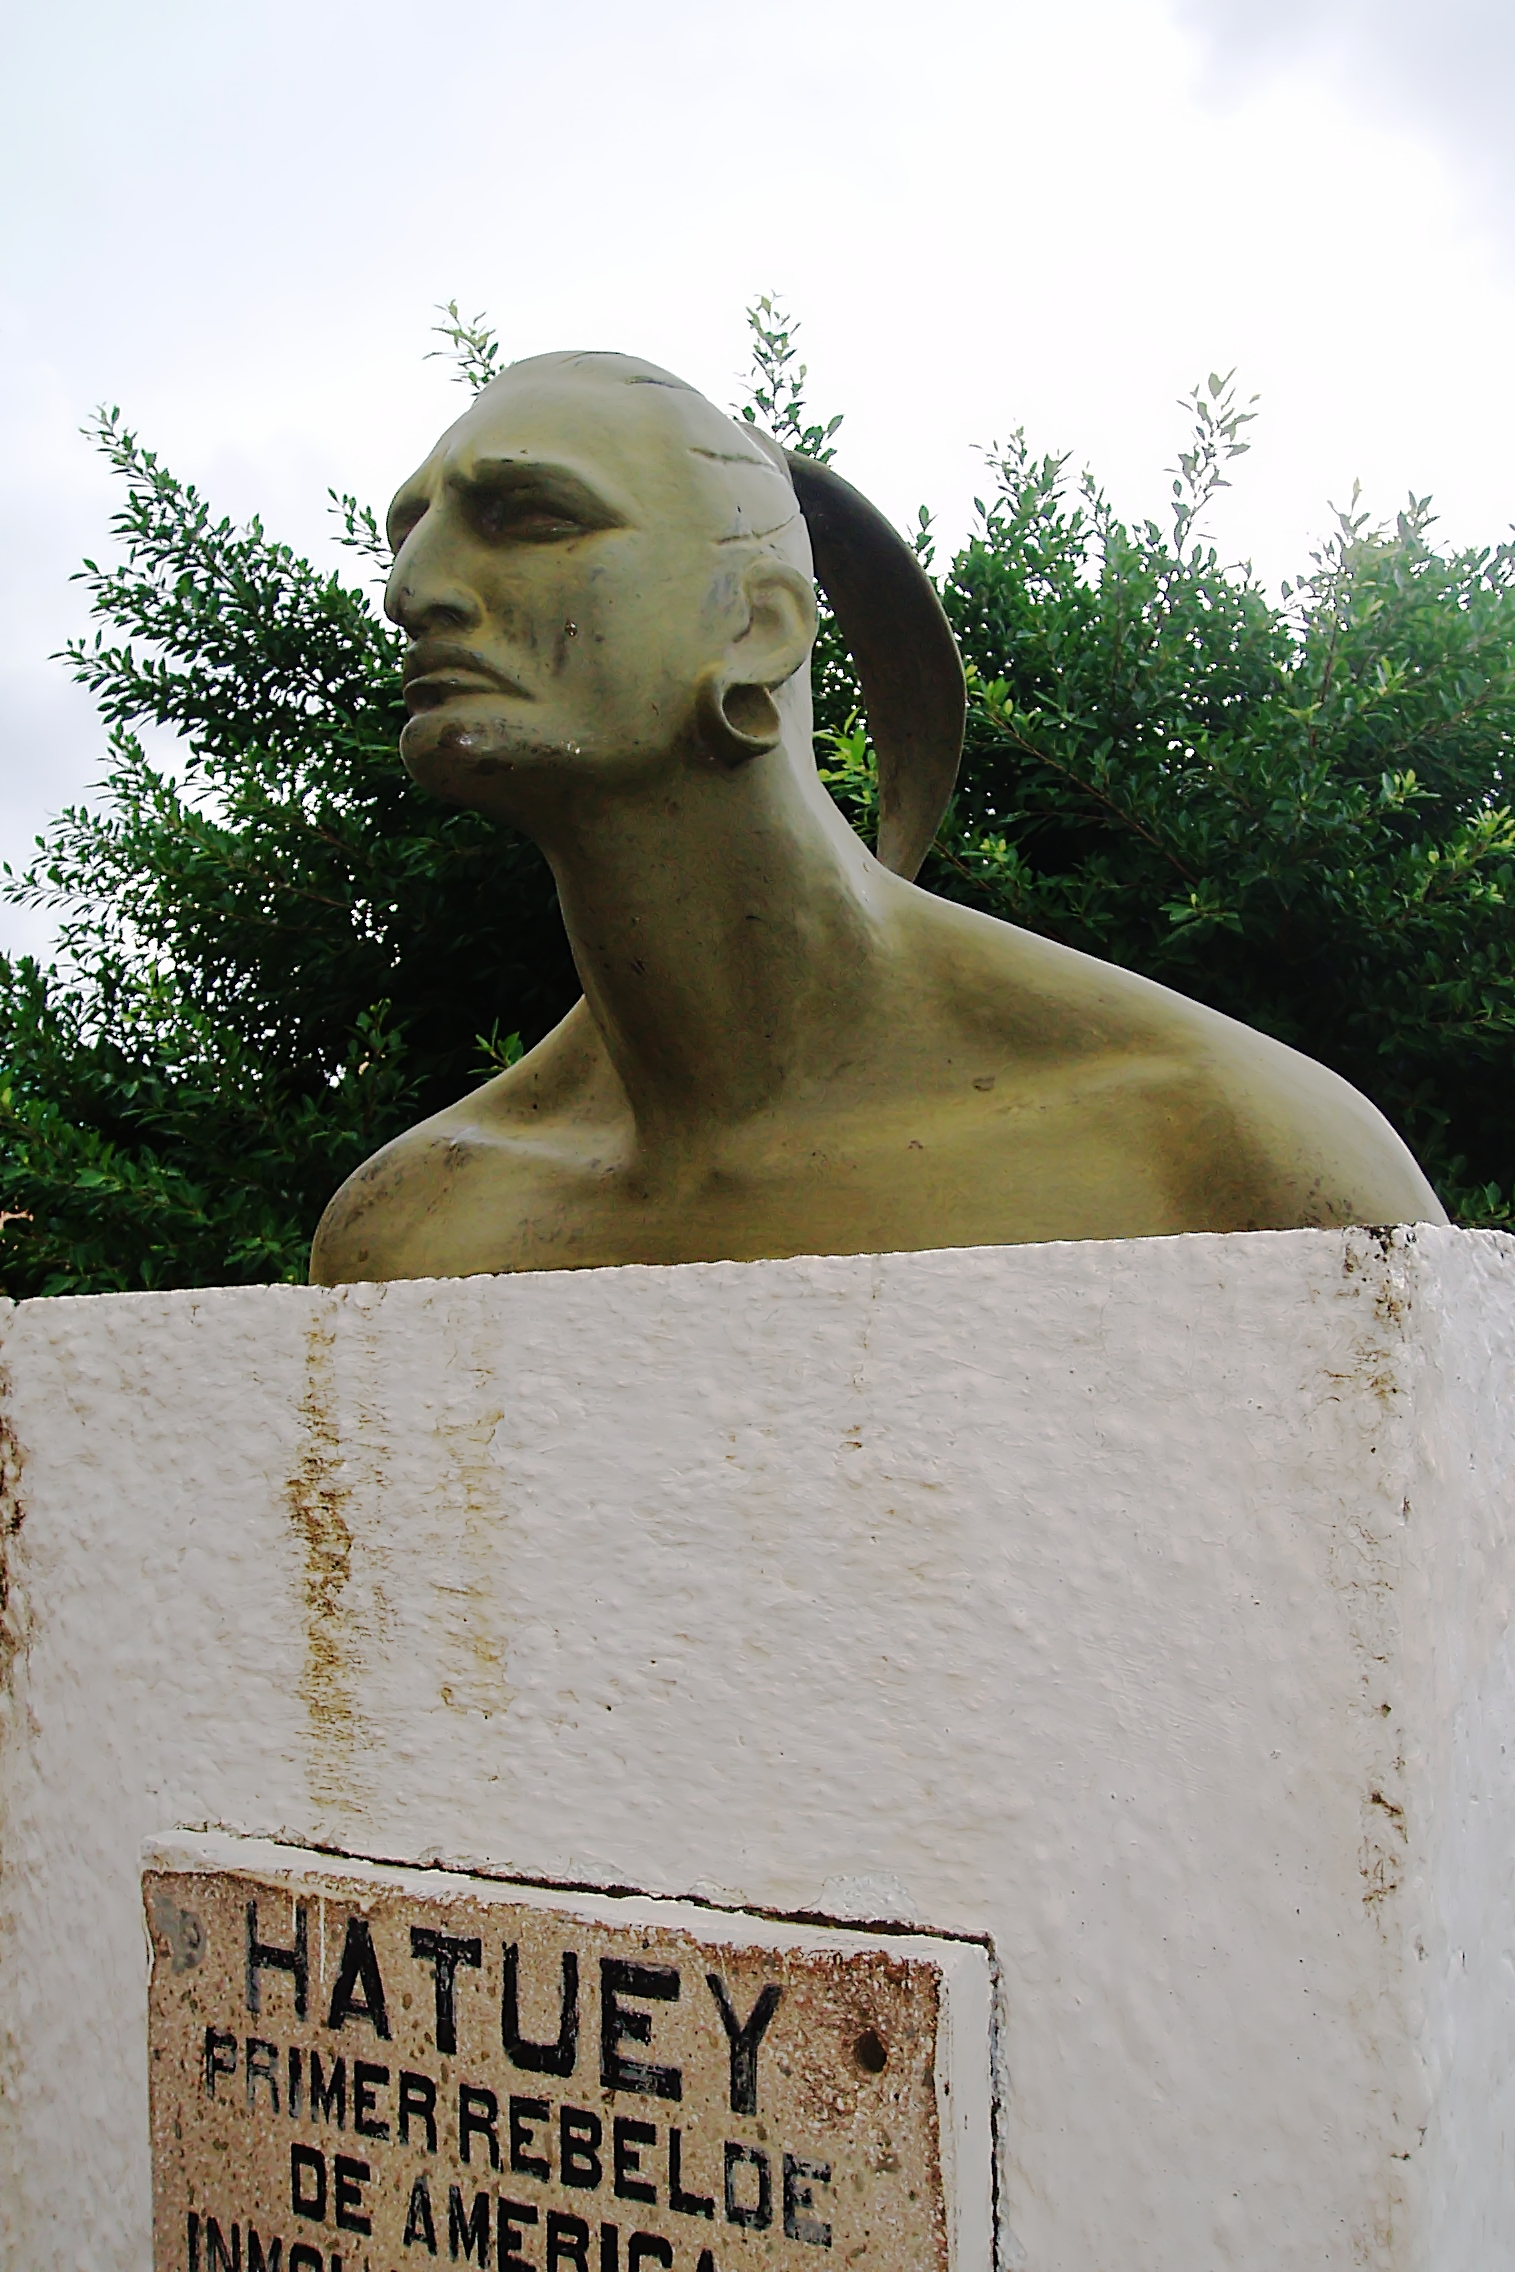 Under order of Pope Alexander VI, Spain was to conquer, colonize, and convert the indigenous populations of the New World to Catholicism. Natives were enslaved to work on Spanish farms, murdered, or killed by disease. This photo shows a monument to the Taínos chieftain Hatuey in modern-day Cuba. Hatuey and other Taínos chieftains were captured and burned alive by the Spanish in 1512.